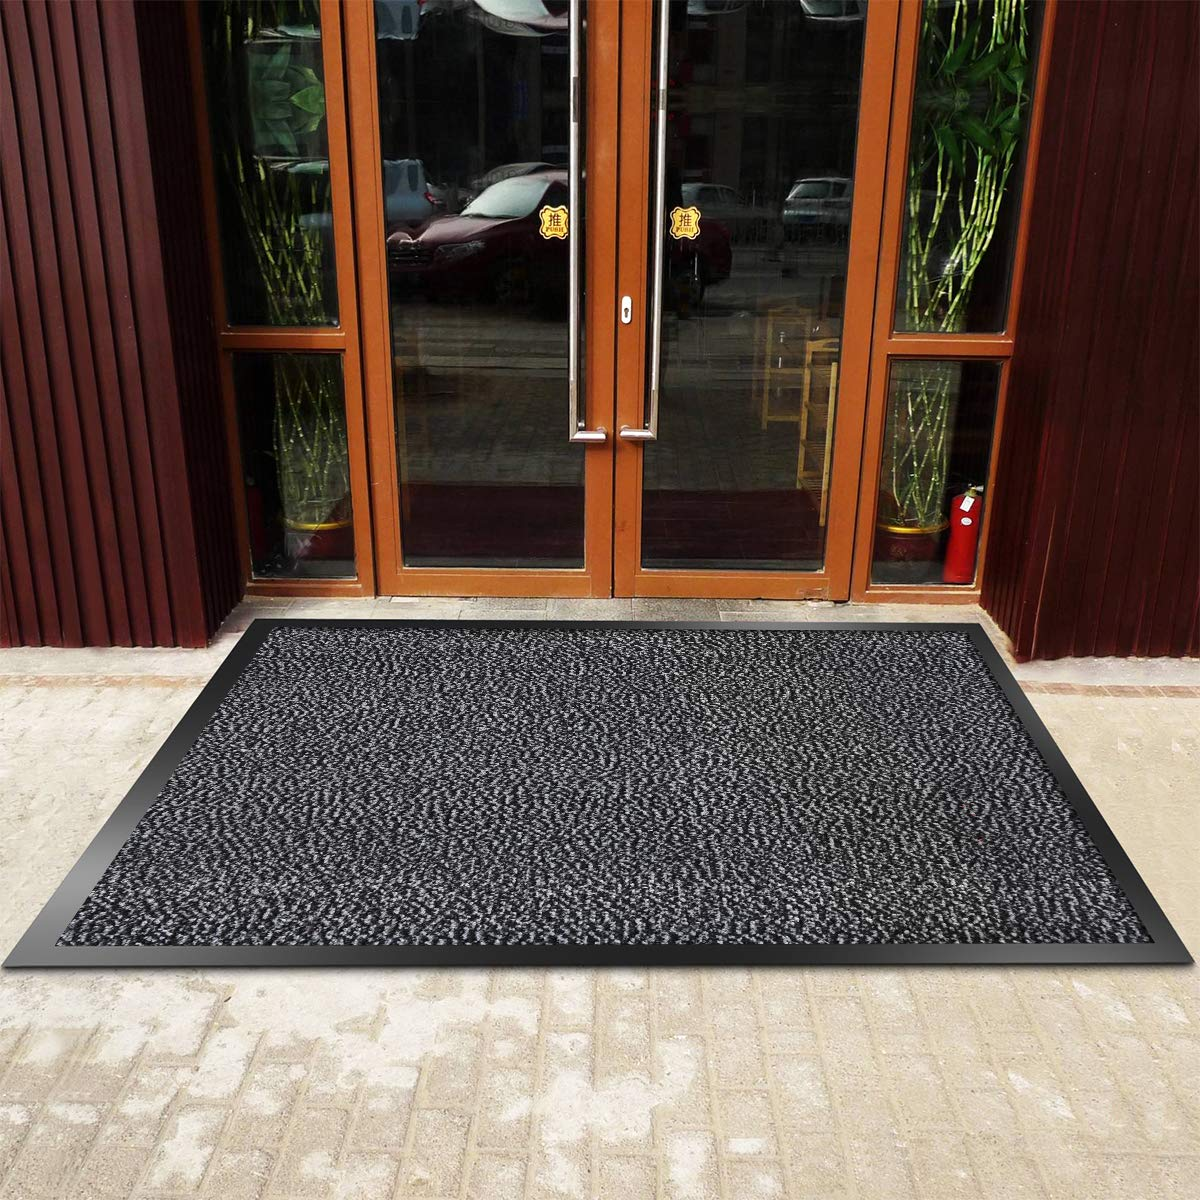 Showin Carpet Entrance Front Door Mat Absorbent Non Slip